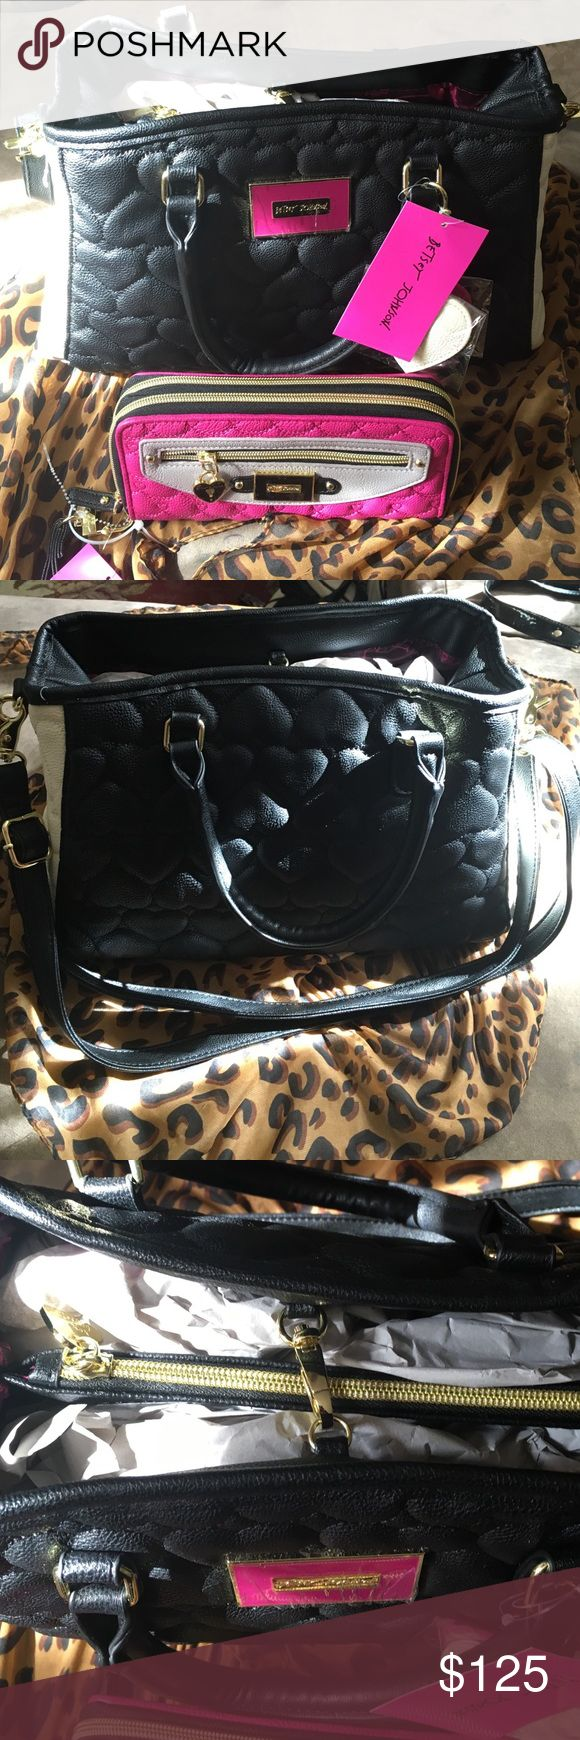 Betsy Johnson matching bag & wallet!❤️❤️❤️💕💕😱 A gorgeous & edgy black, cream, and pink embellished hearts set!! It's a must have for all Betsy fans!! Price is Firm!! Please no lowballers!!😁⭐️⭐️🌙🎃 Betsey Johnson Bags Baby Bags